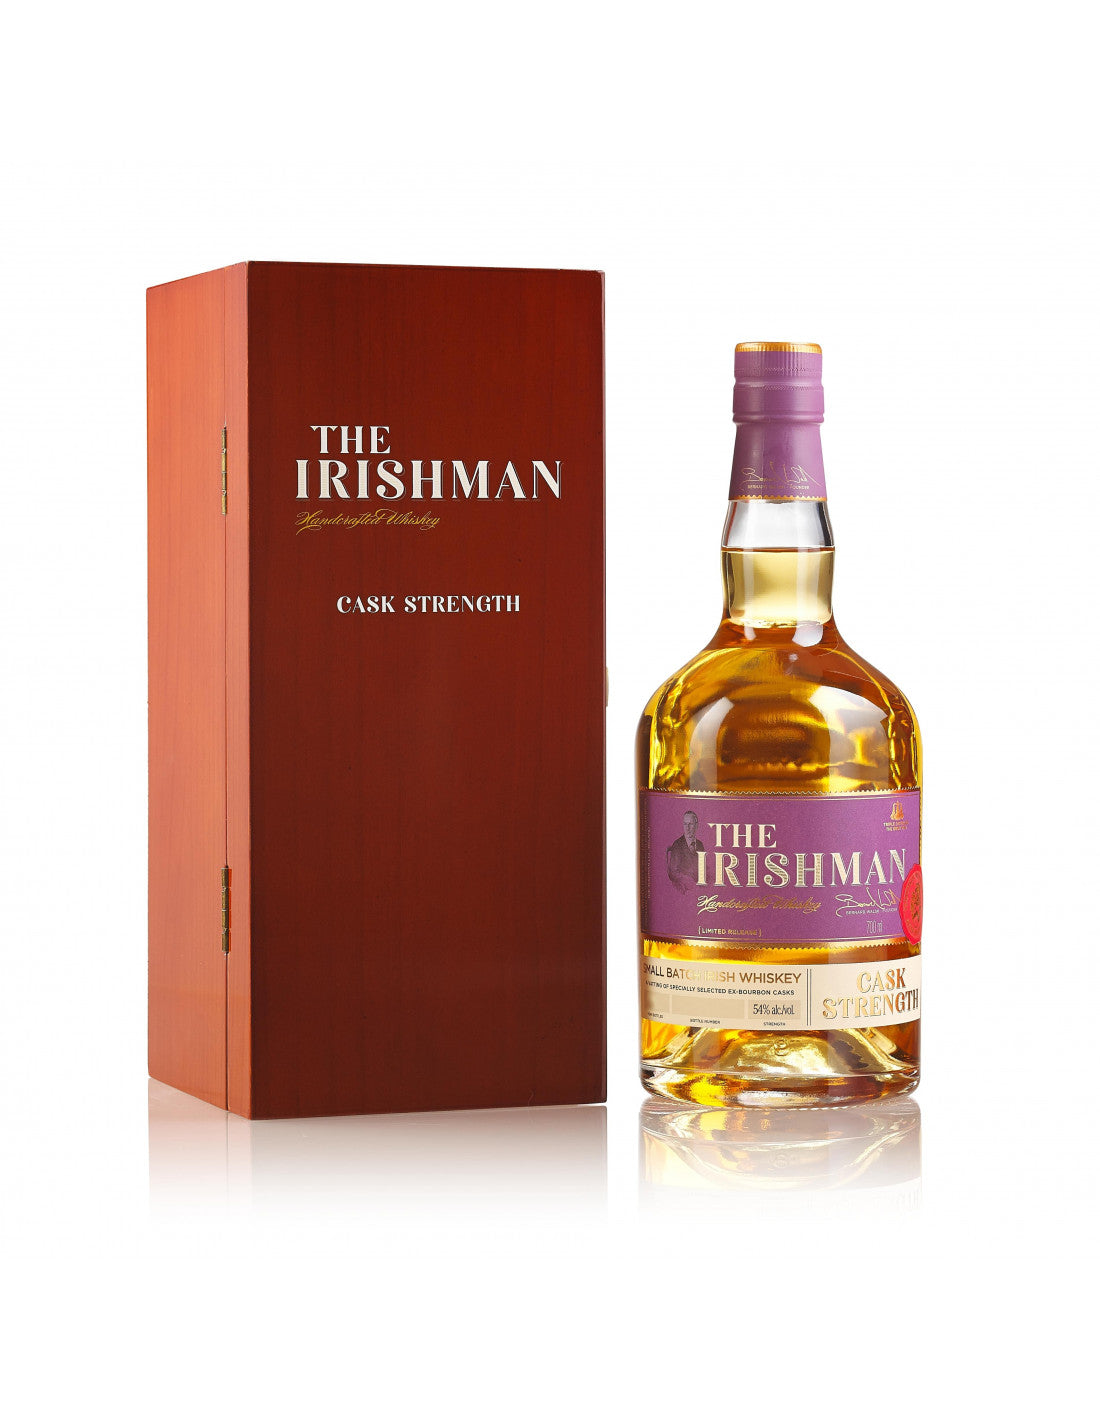 The Irishman Cask Strength 2020 Irish Whiskey